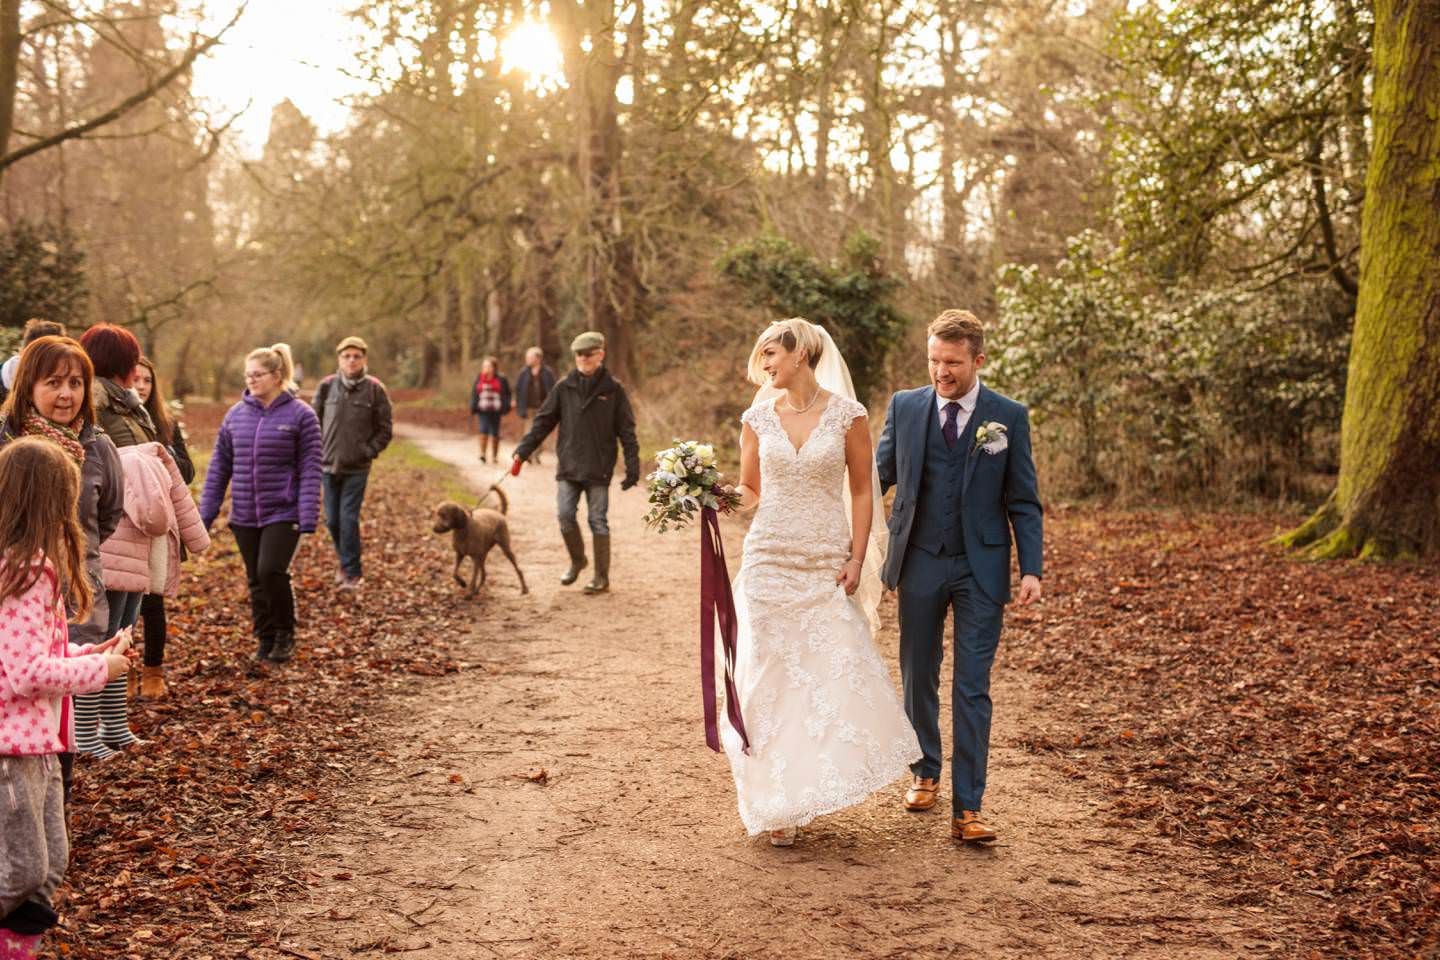 Bride and Groom get photobombed by dog walkers in Ellesmere, Shropshire.